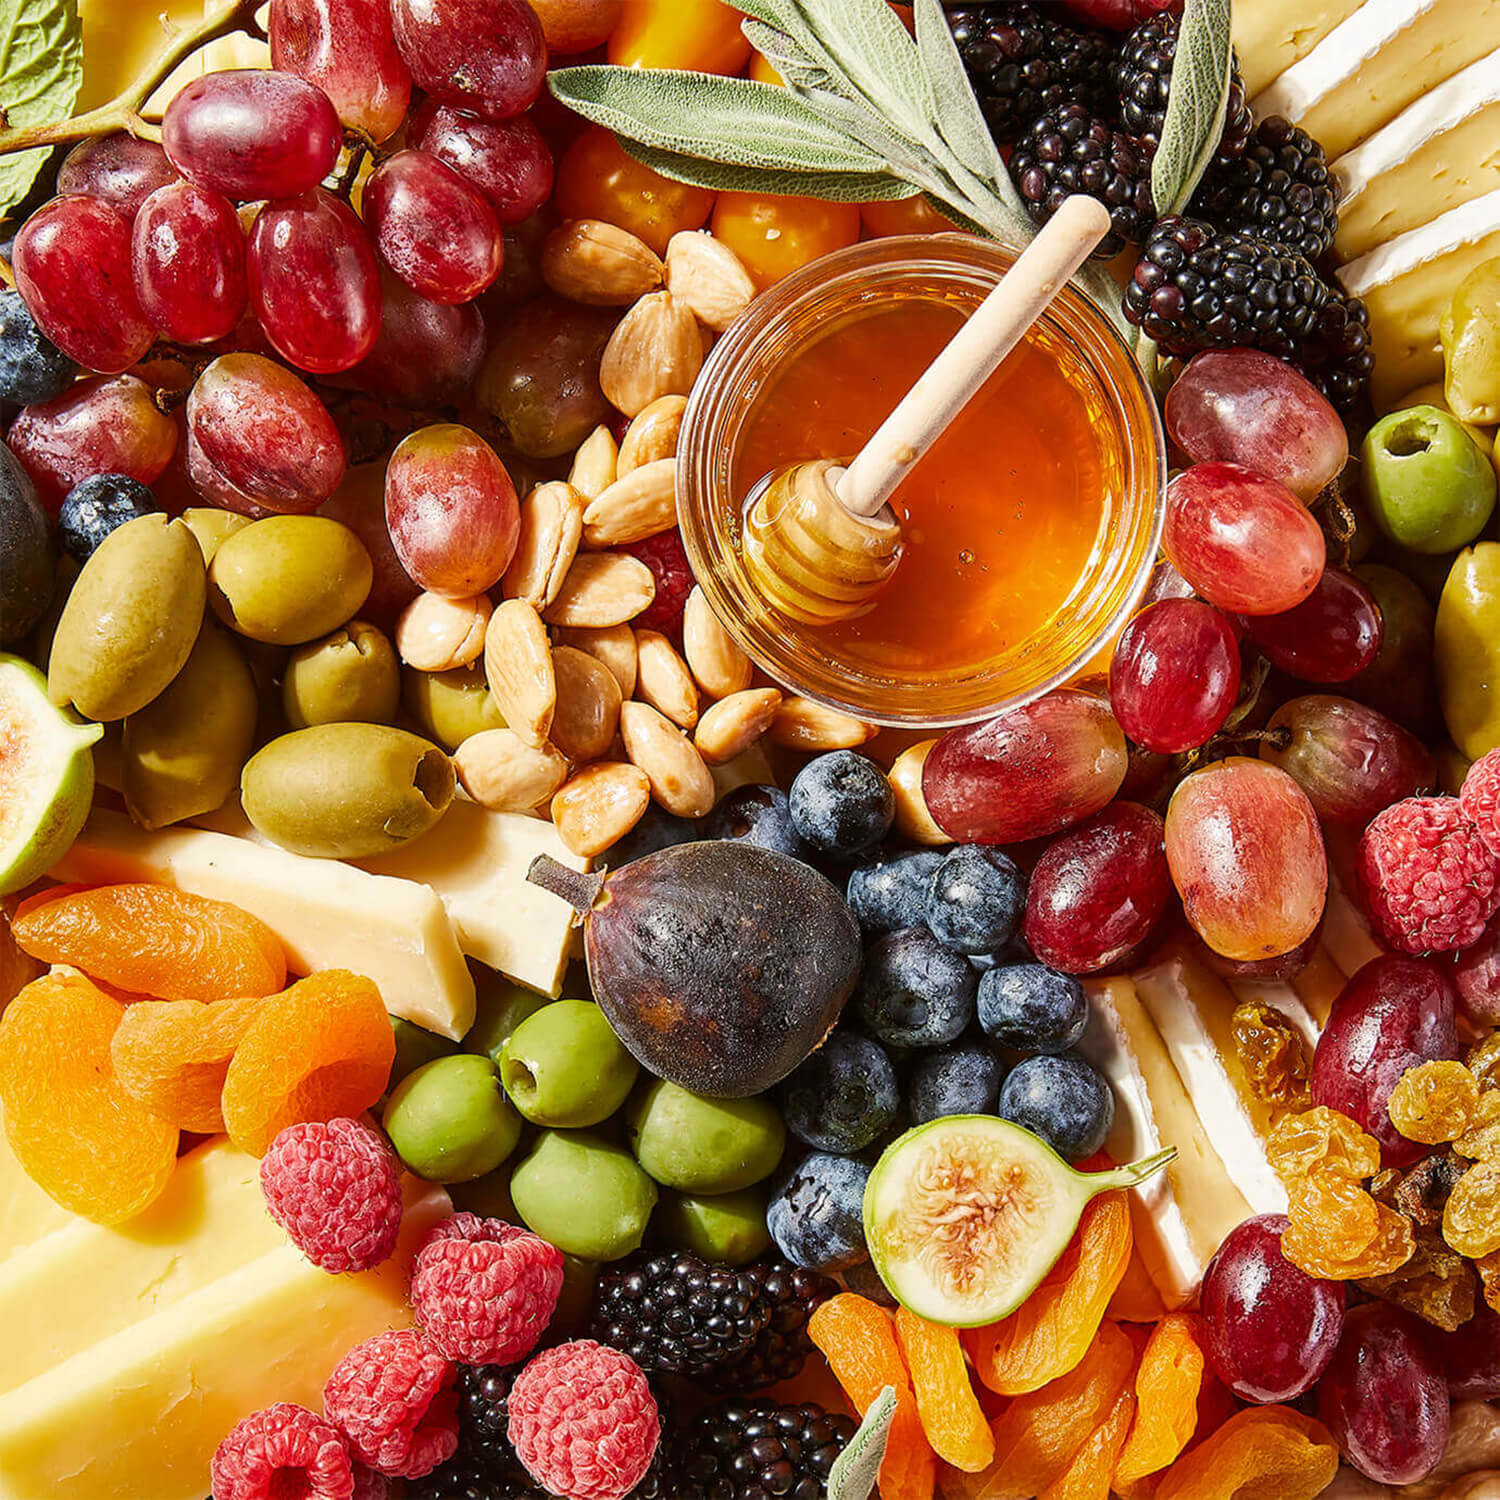 Close-up of a Grazy board containing cheeses and fruits